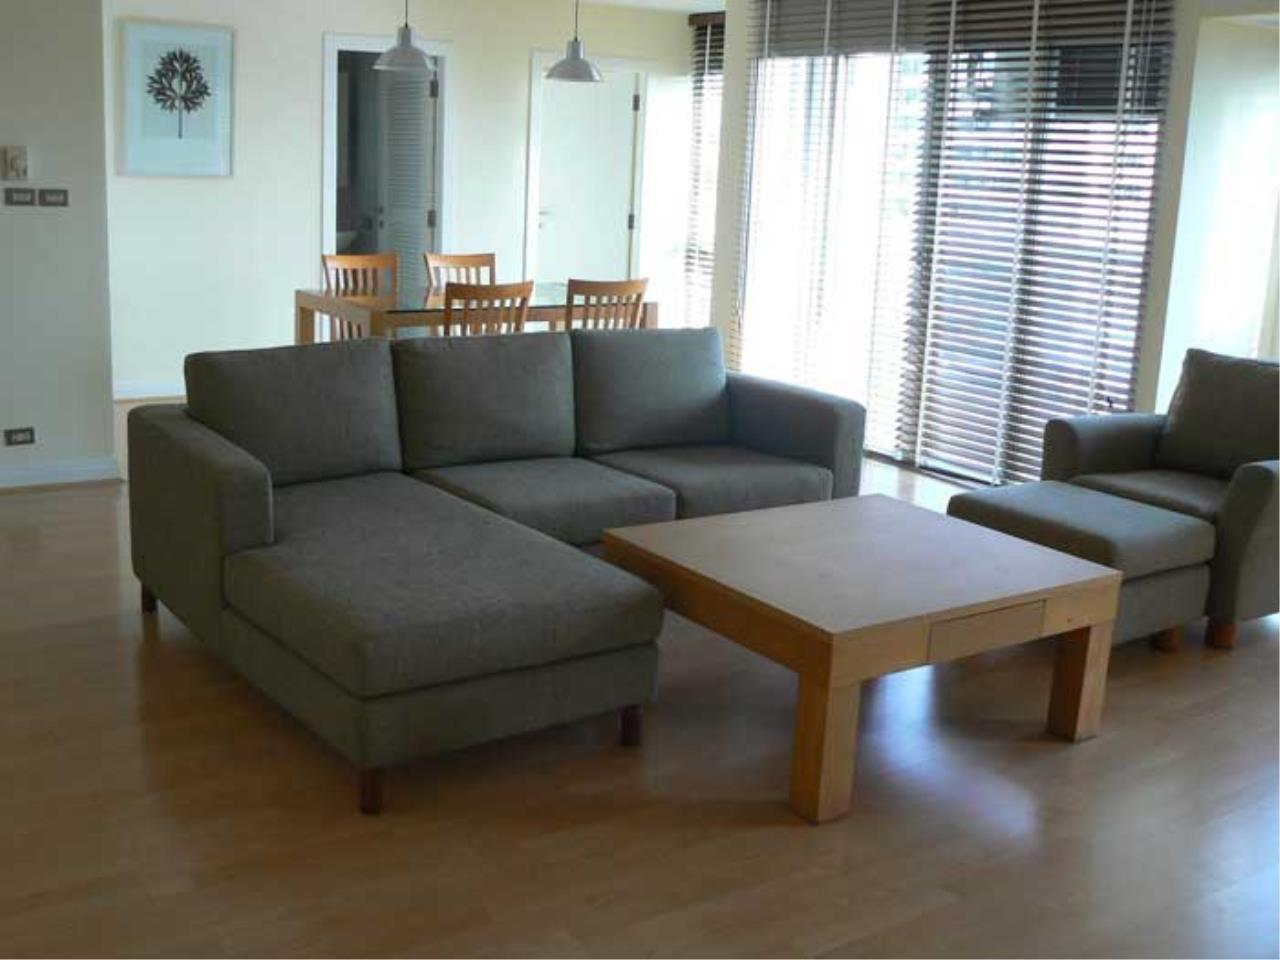 Piri Property Agency's Silom Suite - 2 Bedroom Unit for Rent 1